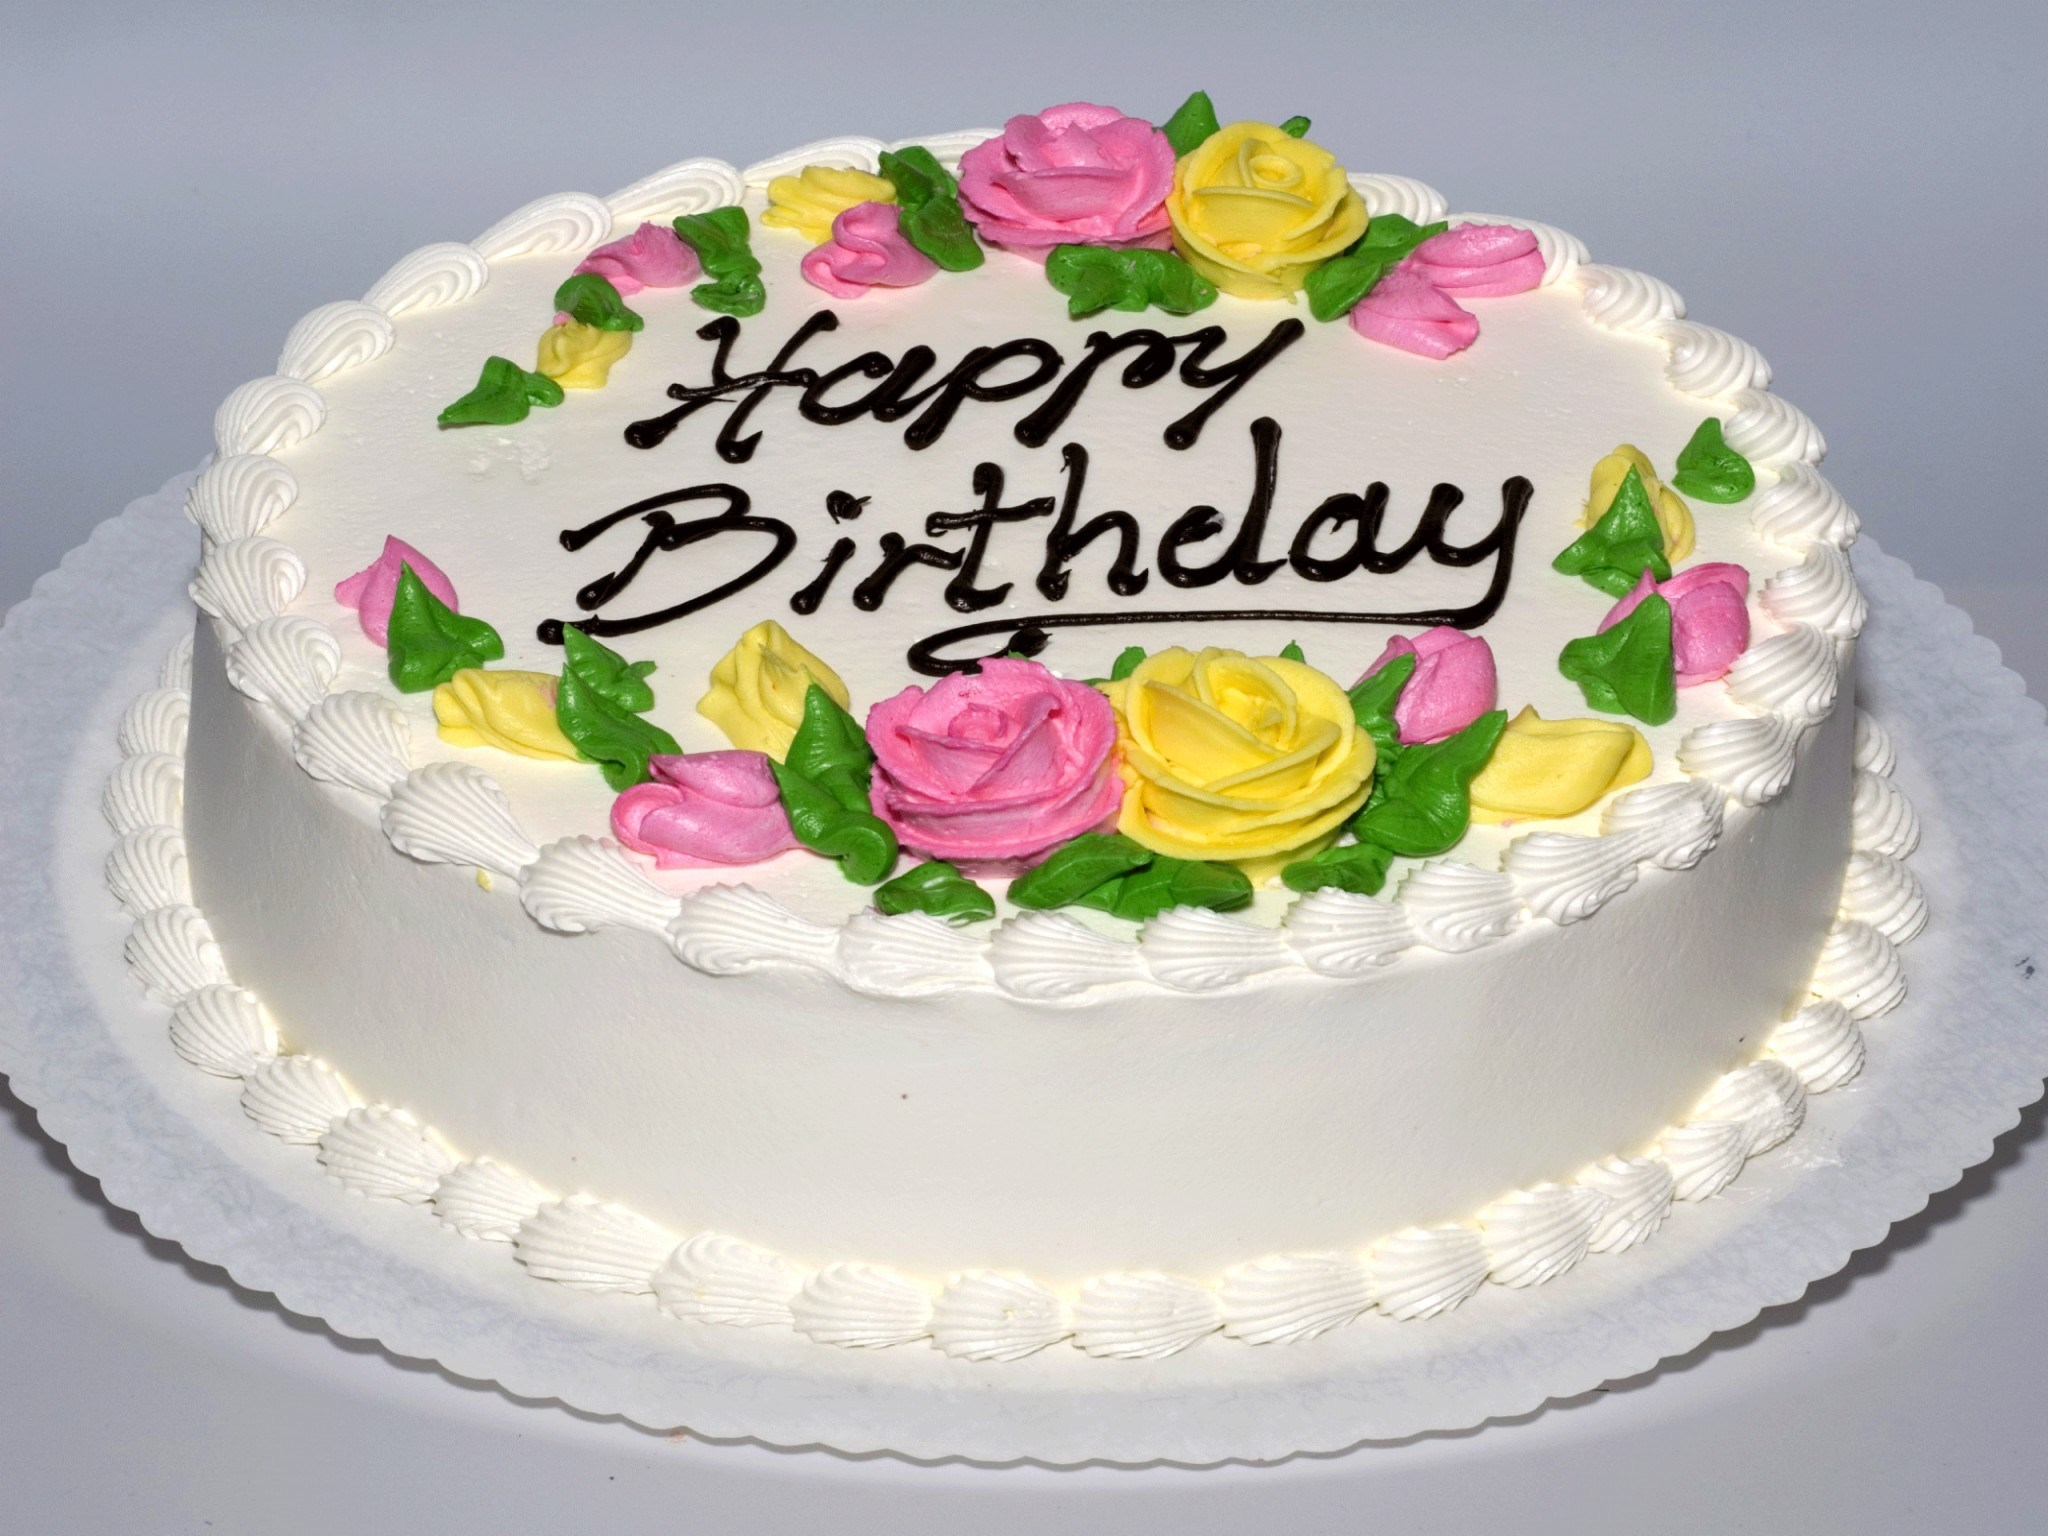 birthday cake with message picture ; remarkable-ideas-birthday-cake-messages-stylist-design-and-sms-birthday-cake-messages-for-wife